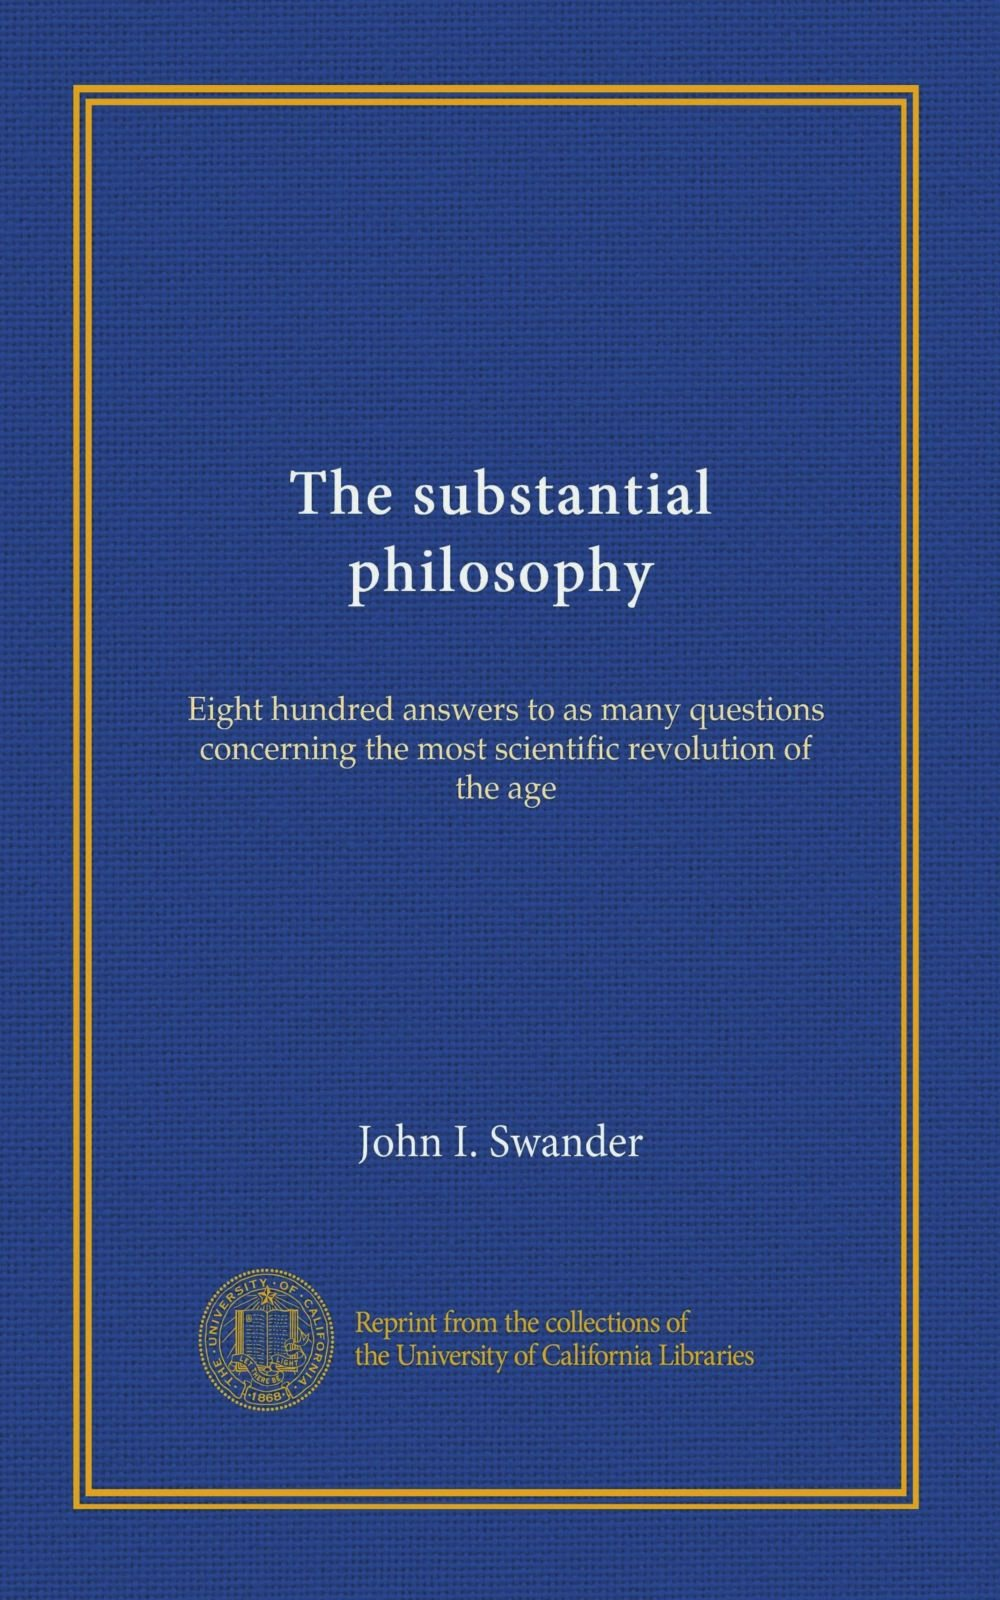 Download The substantial philosophy: Eight hundred answers to as many questions concerning the most scientific revolution of the age pdf